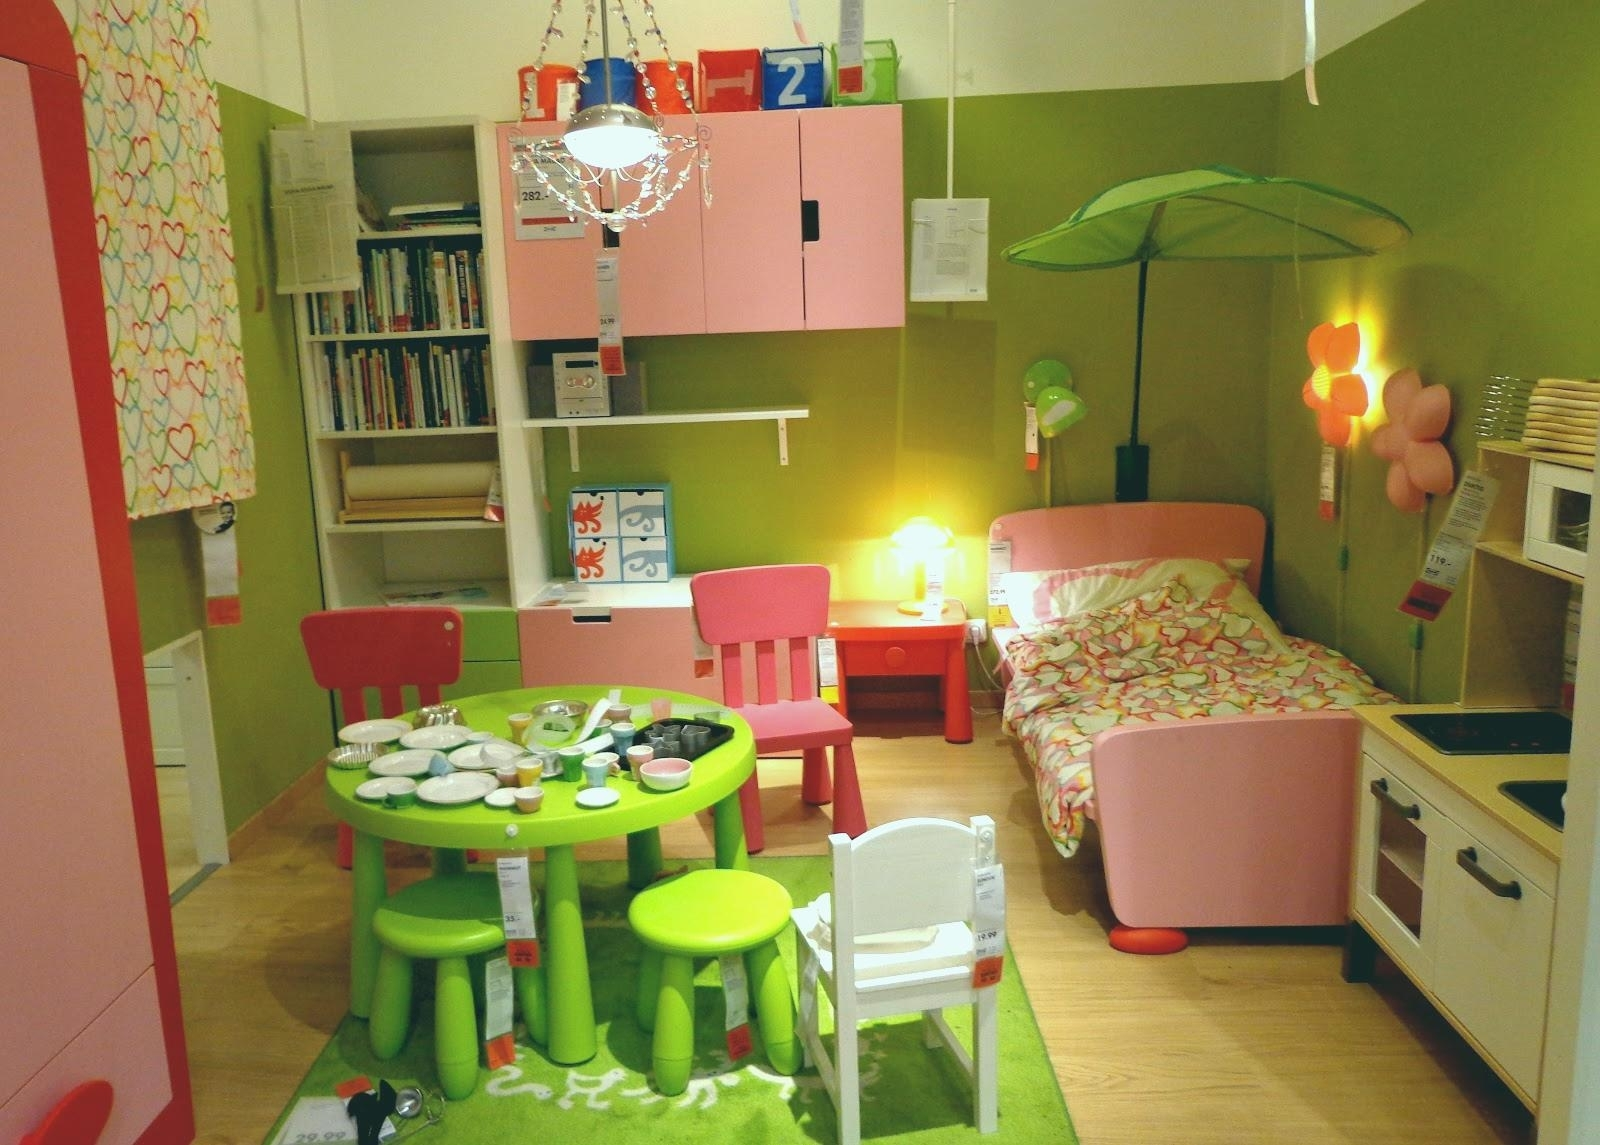 26 Luxurius Ikea Kinderzimmer Betthimmel